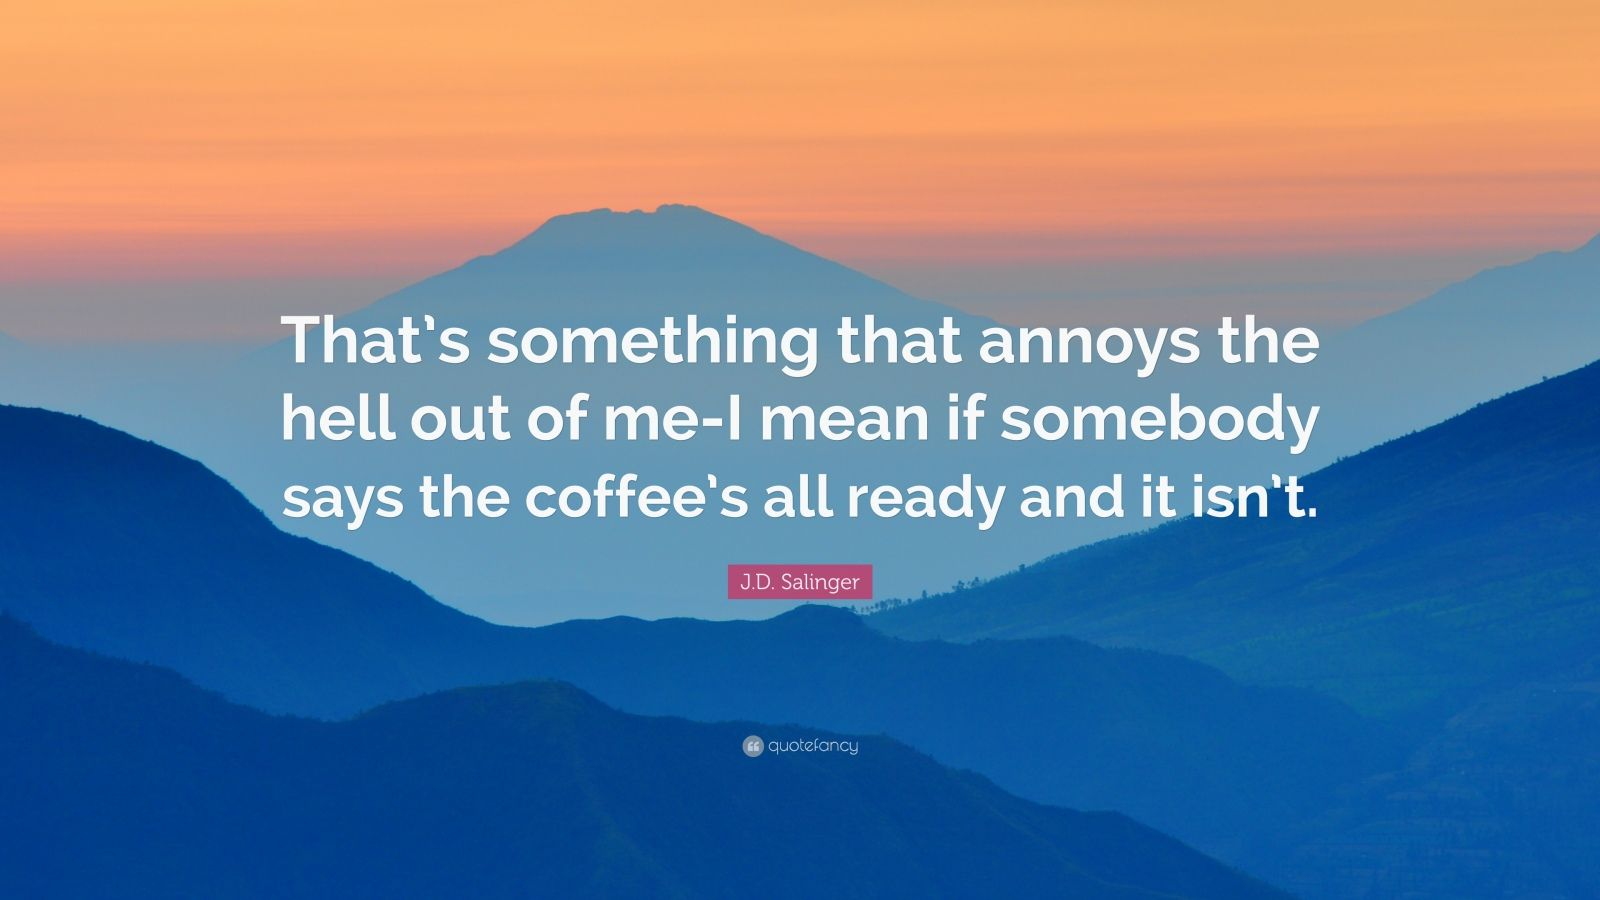 """J.D. Salinger Quote: """"That's something that annoys the hell out of me-I mean if somebody says the coffee's all ready and it isn't."""""""